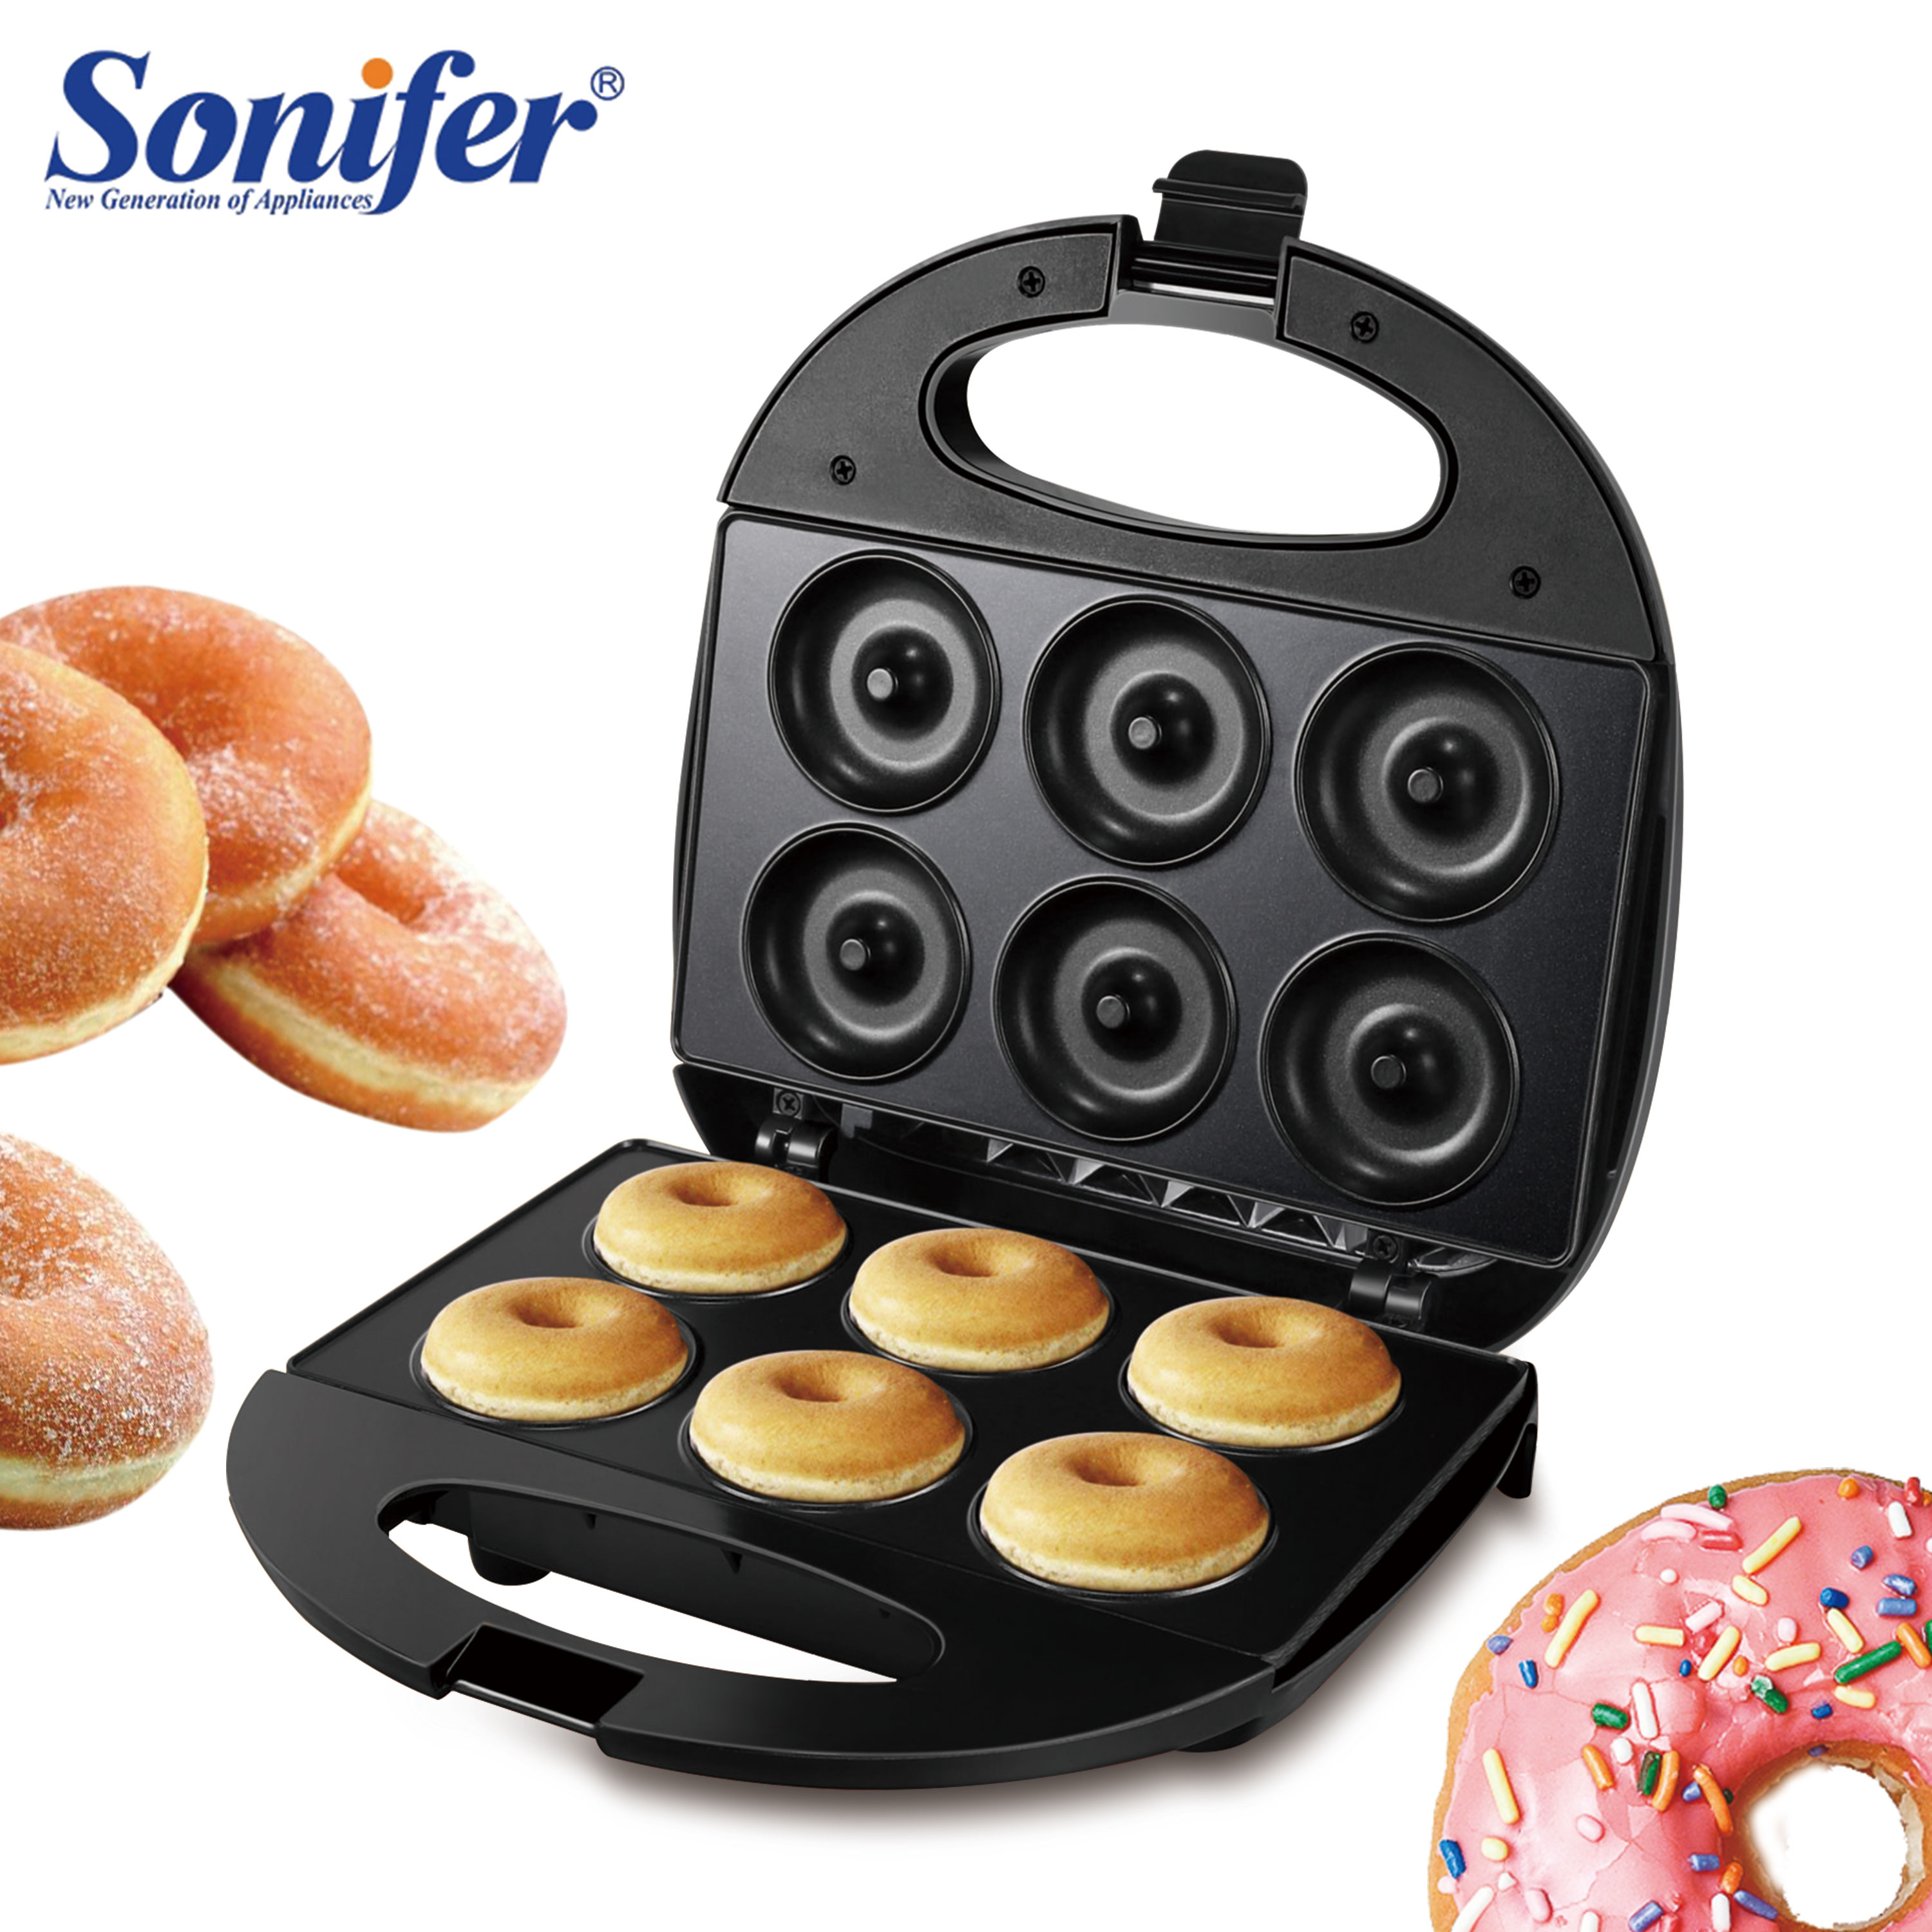 750W Electric Waffles Maker Sandwich Maker DIY Donut Maker Machine Breakfast Waffle Machine Baking Pan Non-stick 220V Sonifer